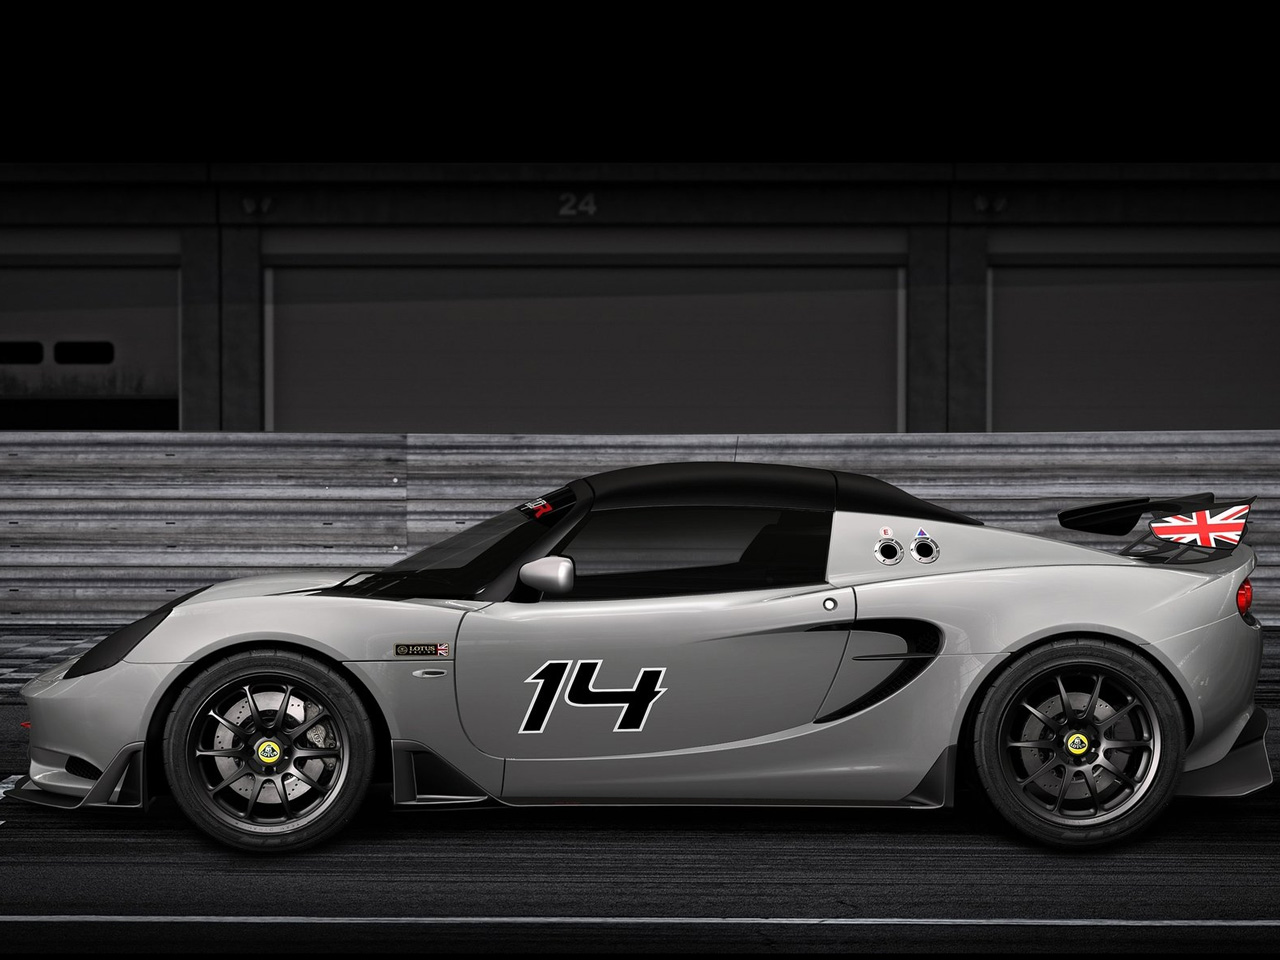 Lotus-Elise-S-Cup-R-Side-View-car-information-wallpaper-wp5602123